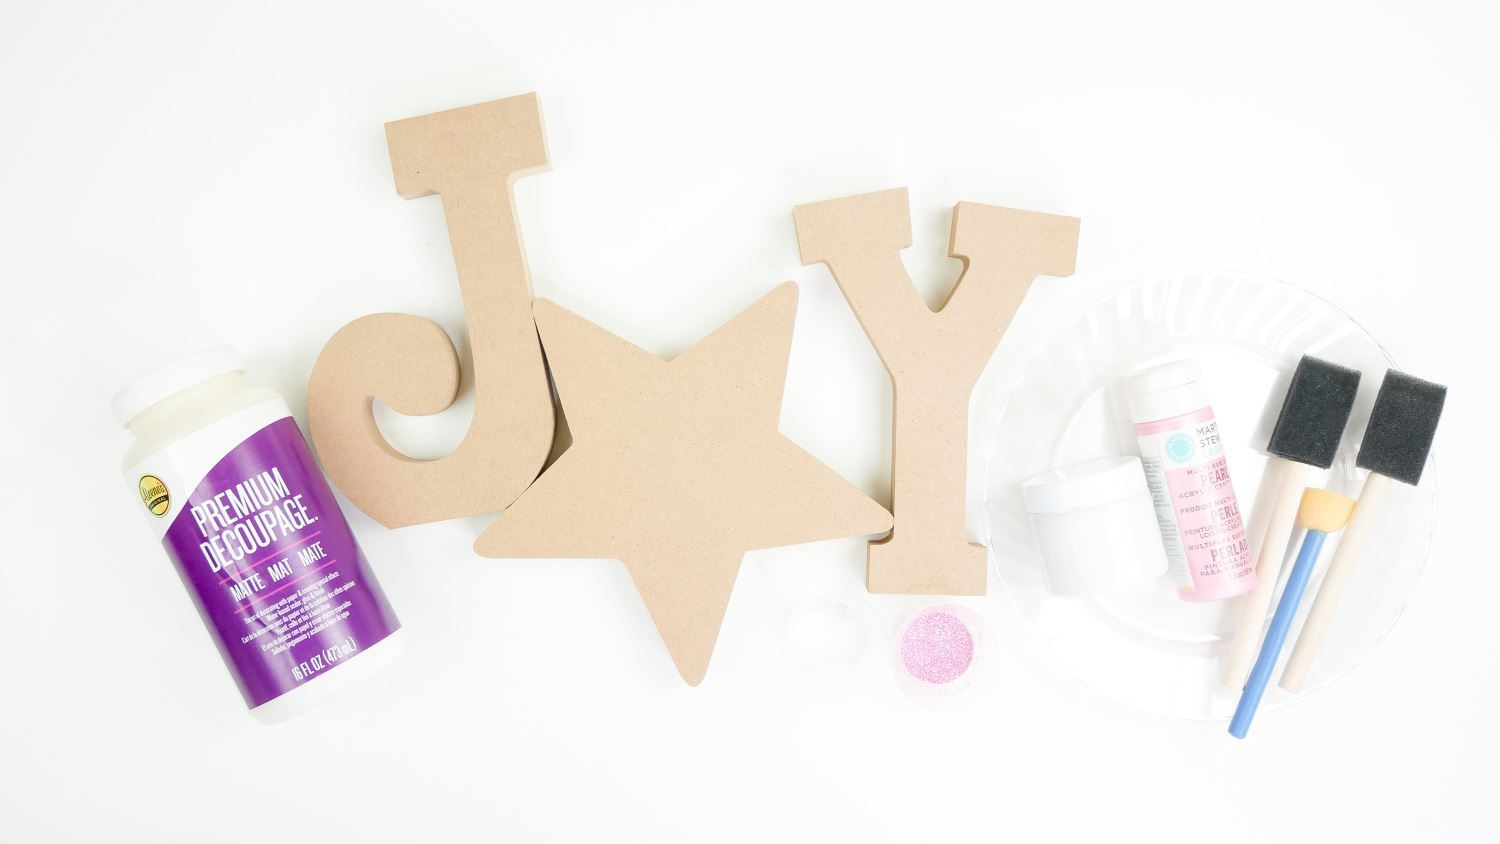 JOY sign supplies